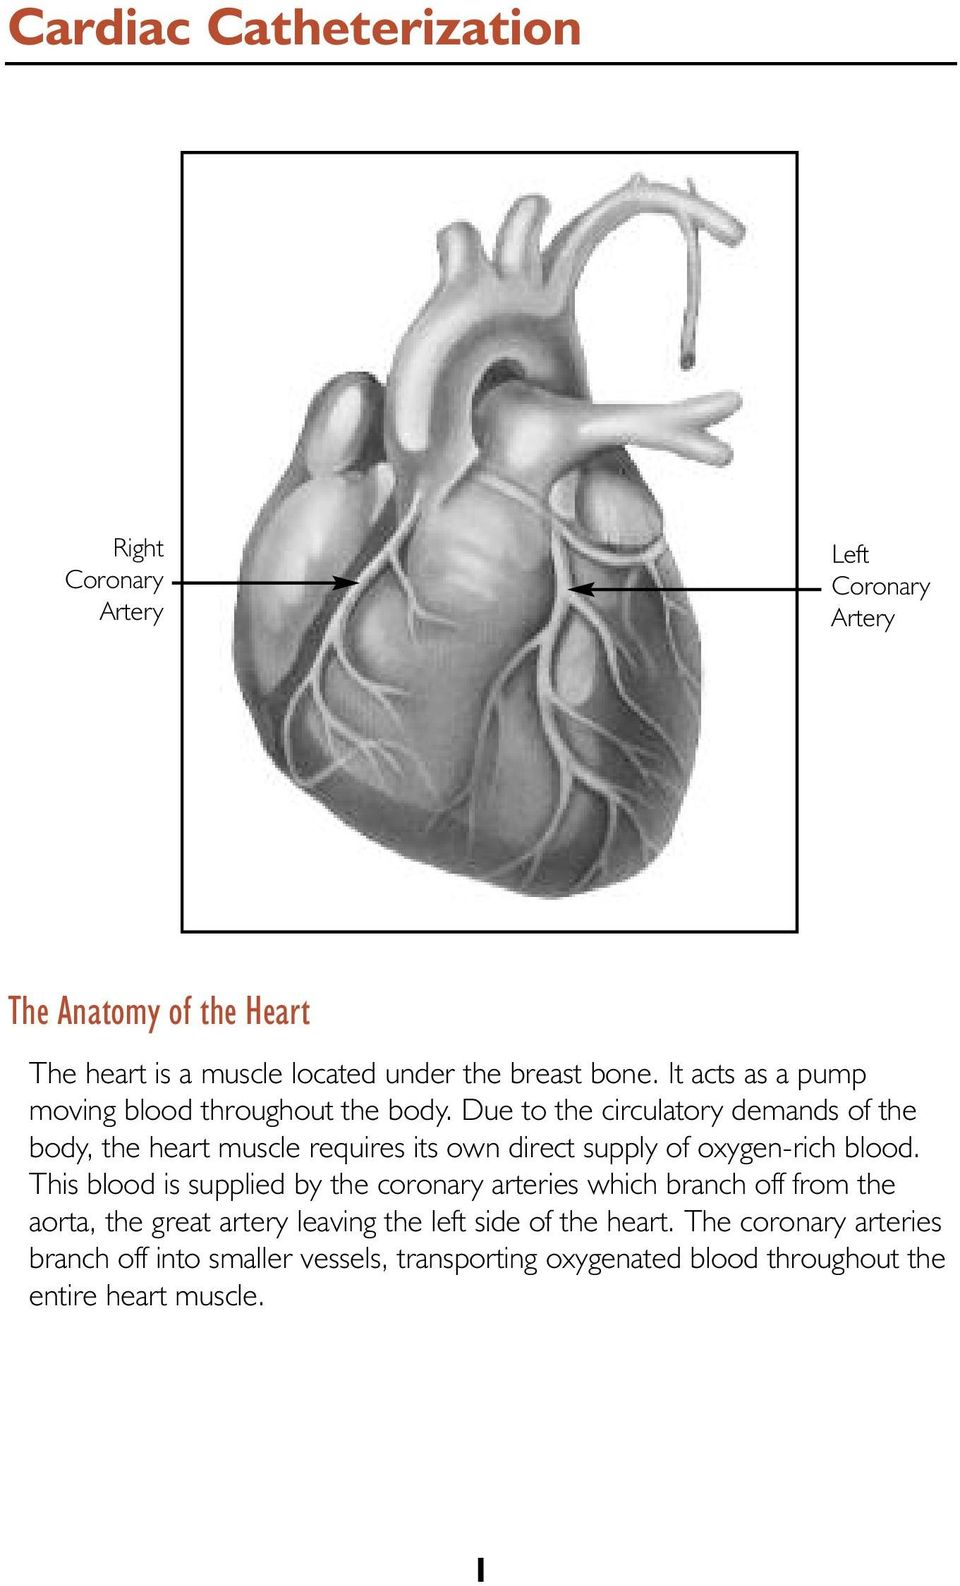 Due to the circulatory demands of the body, the heart muscle requires its own direct supply of oxygen-rich blood.